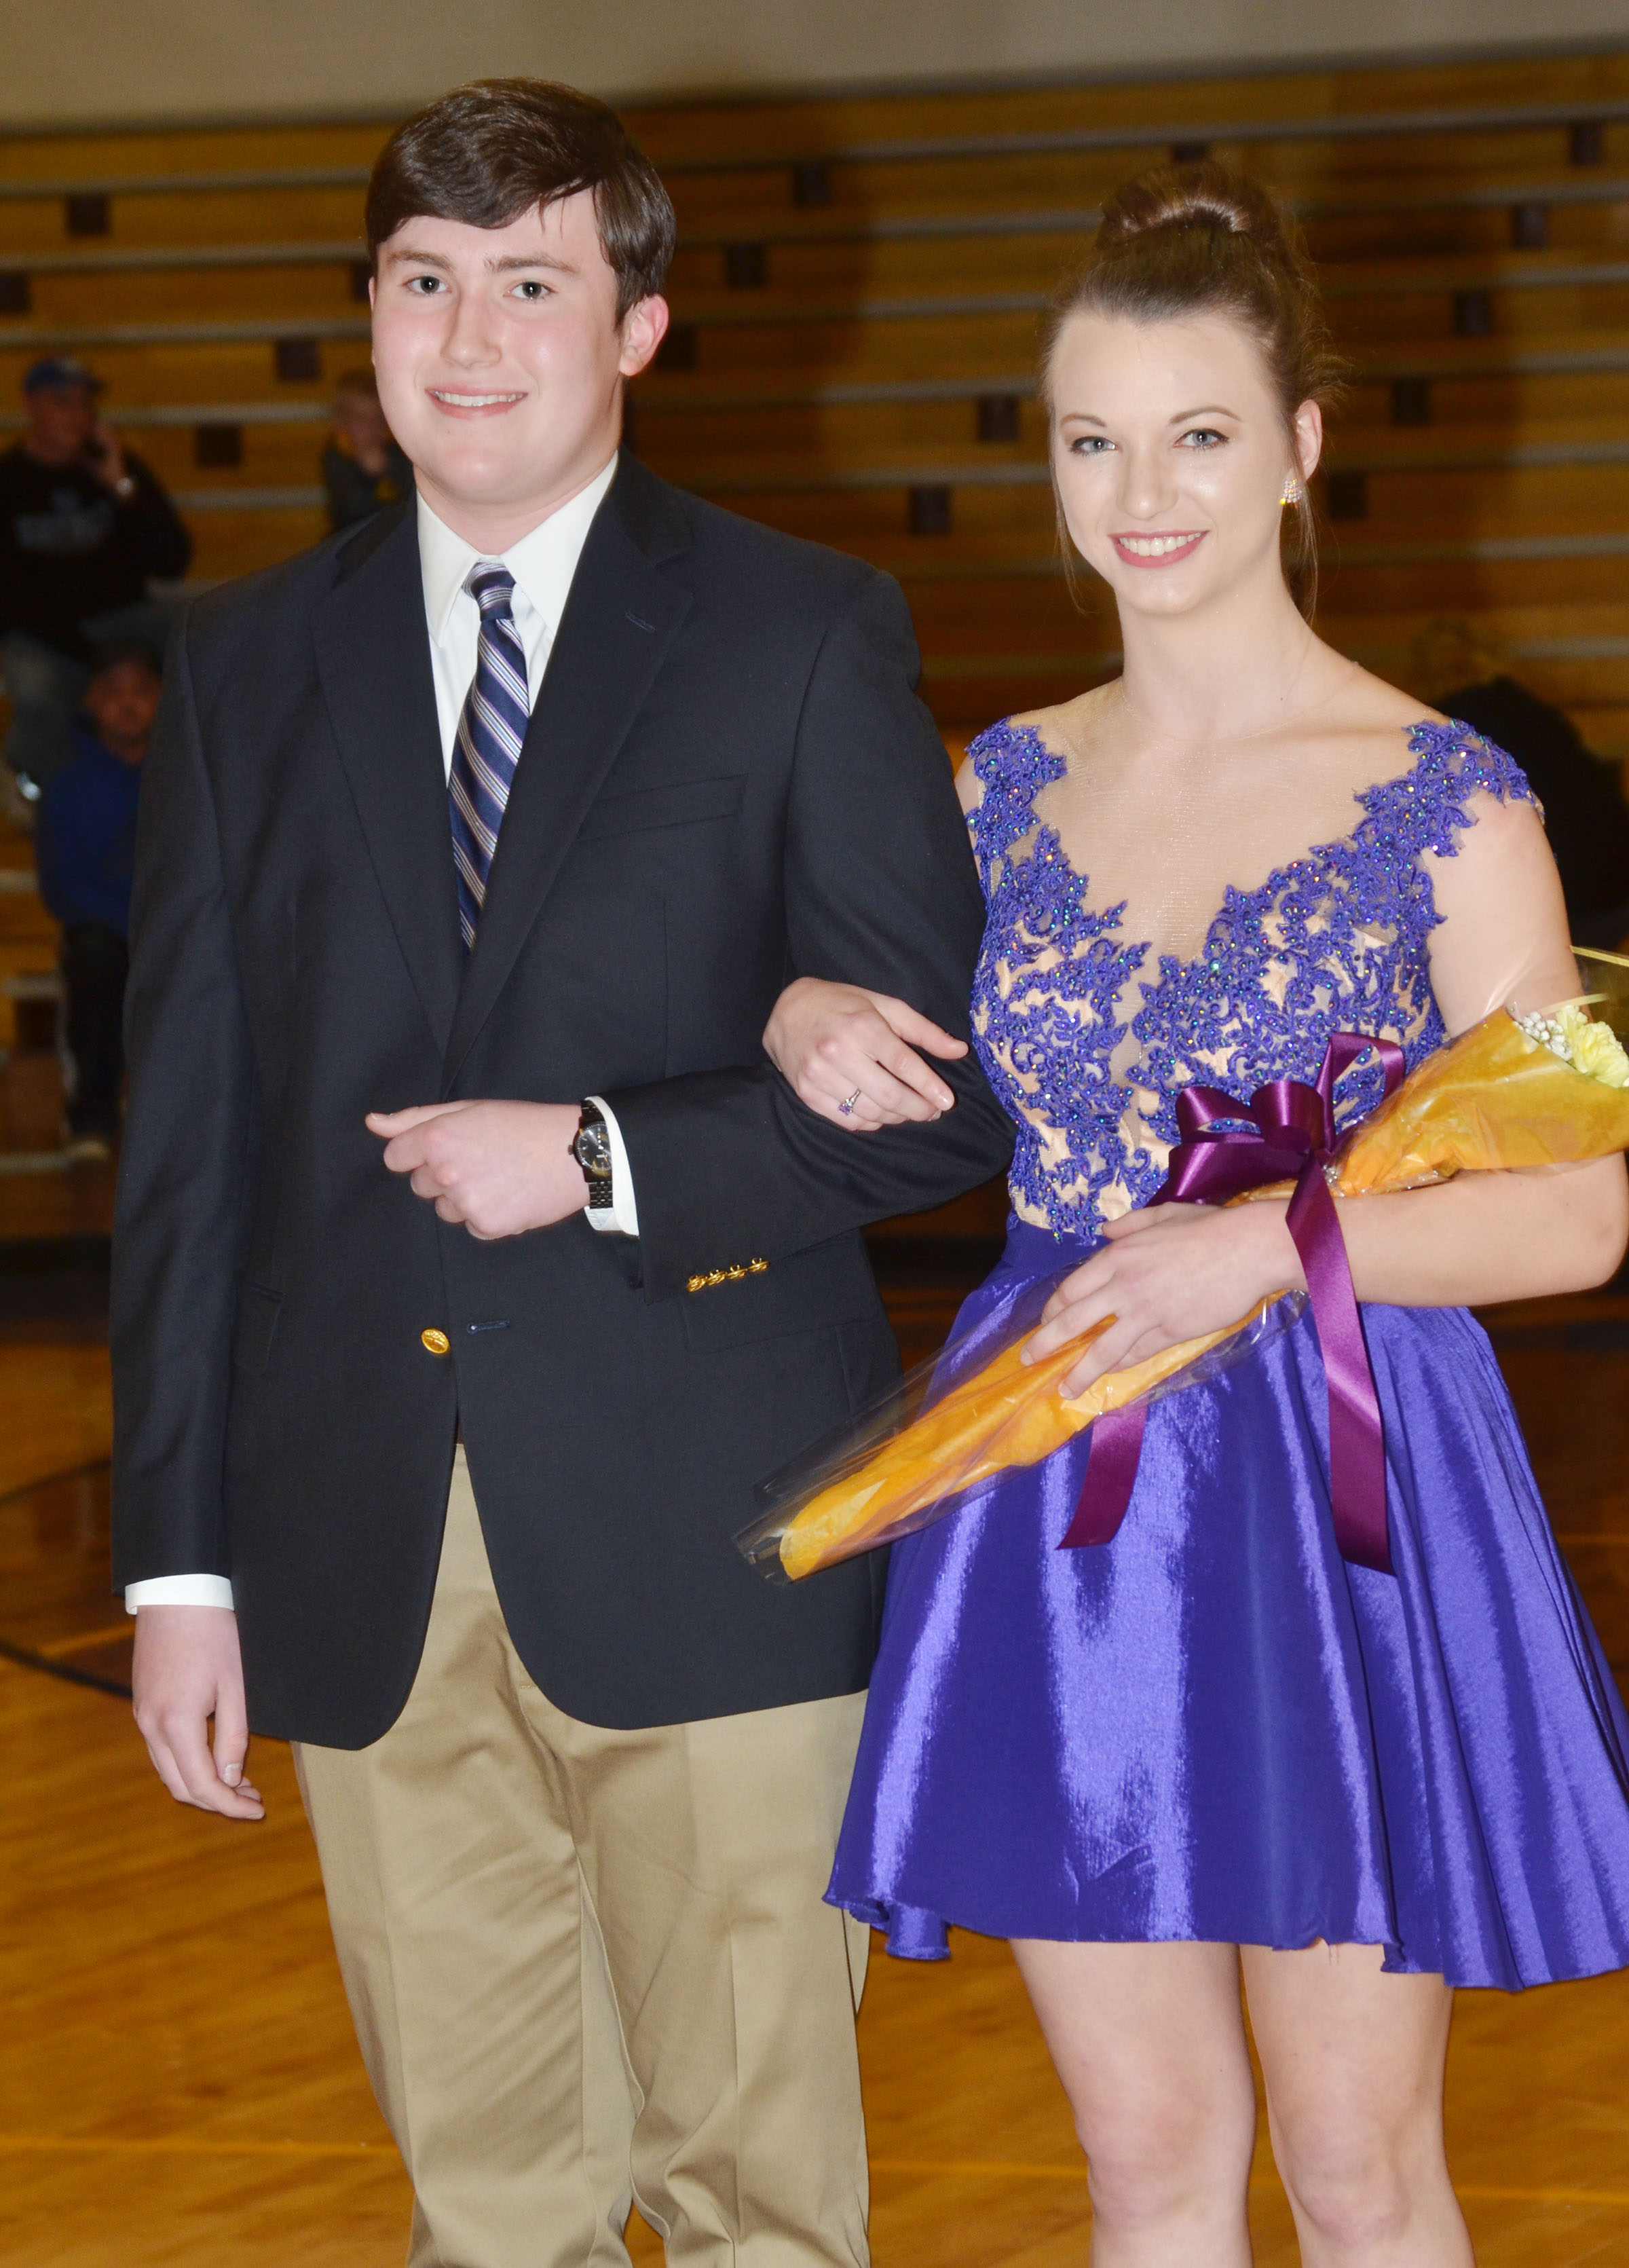 Zack Settle and Caylie Blair represented the CHS senior class.